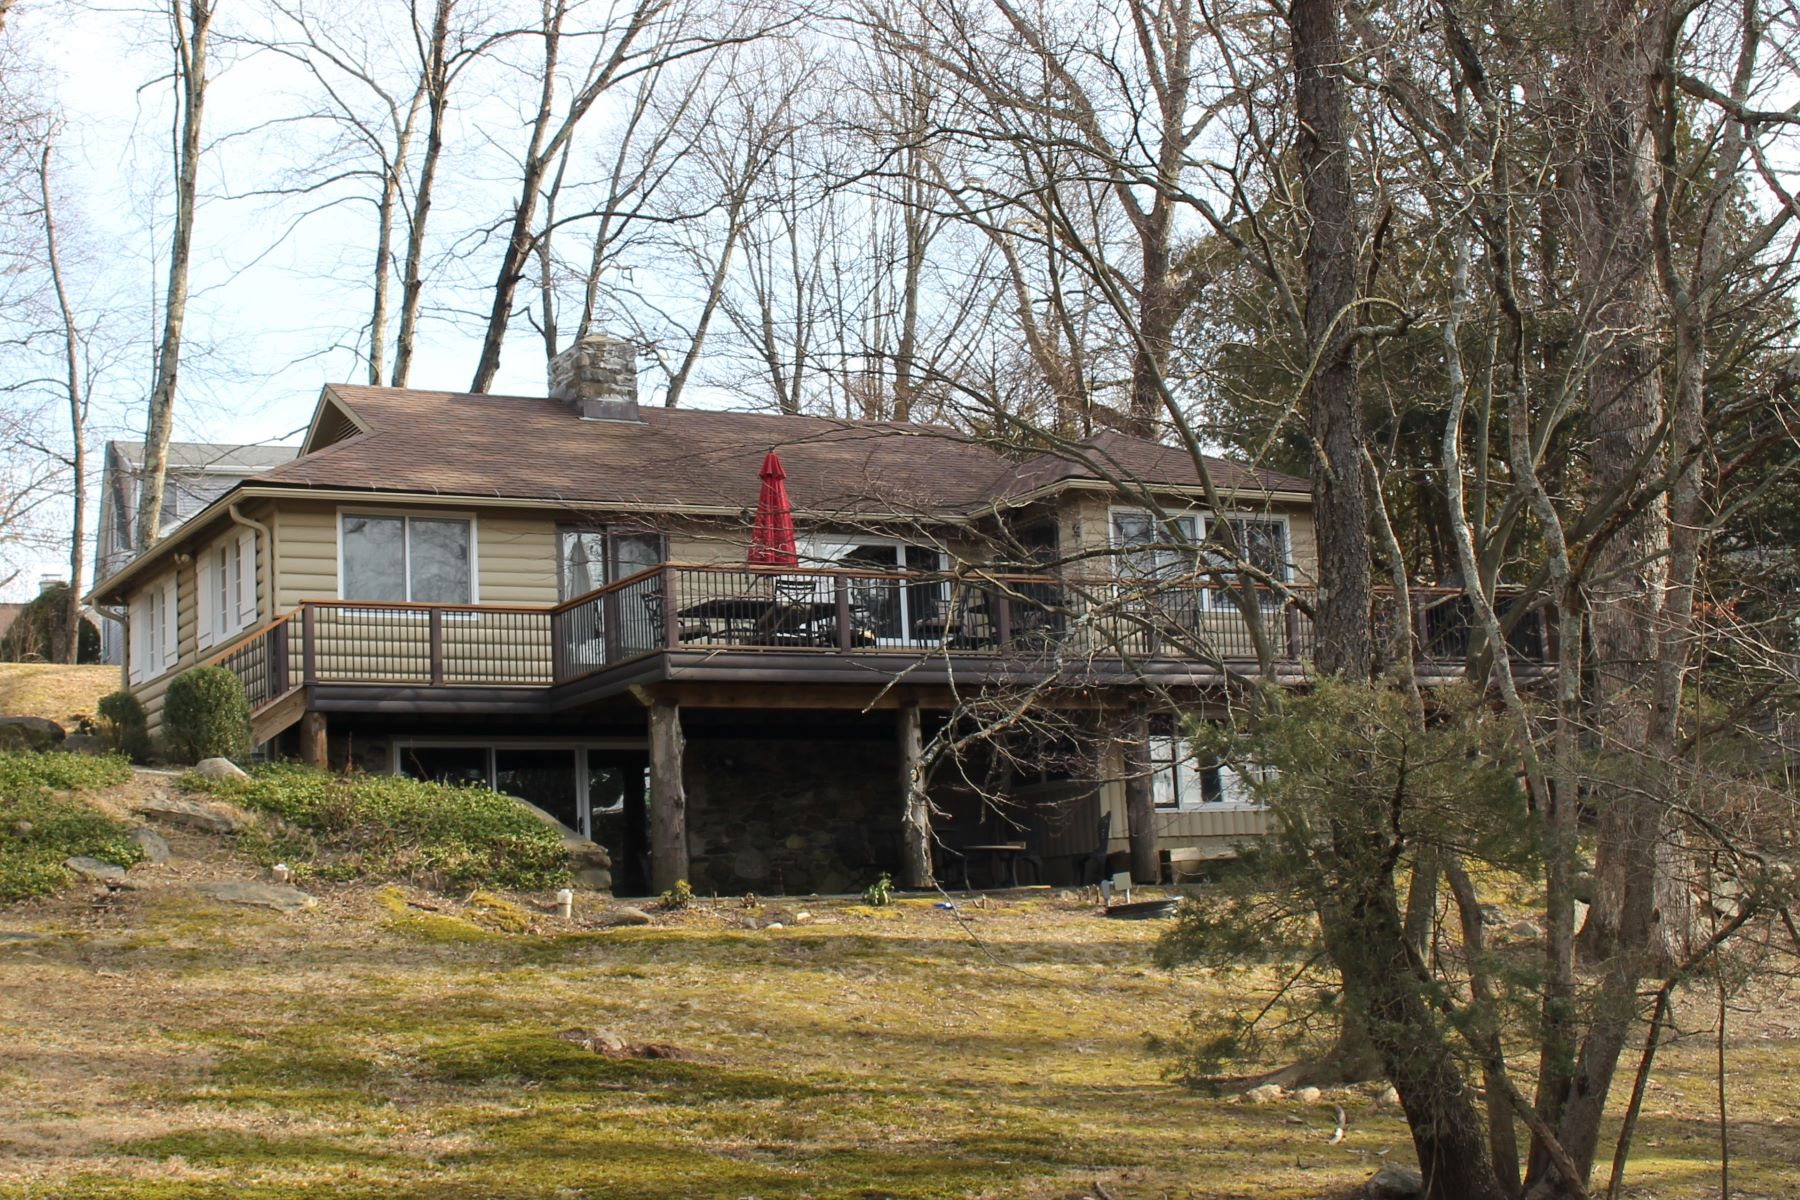 Single Family Home for Sale at Candlewood Lake Club 2 Mountain Drive New Milford, Connecticut 06776 United States